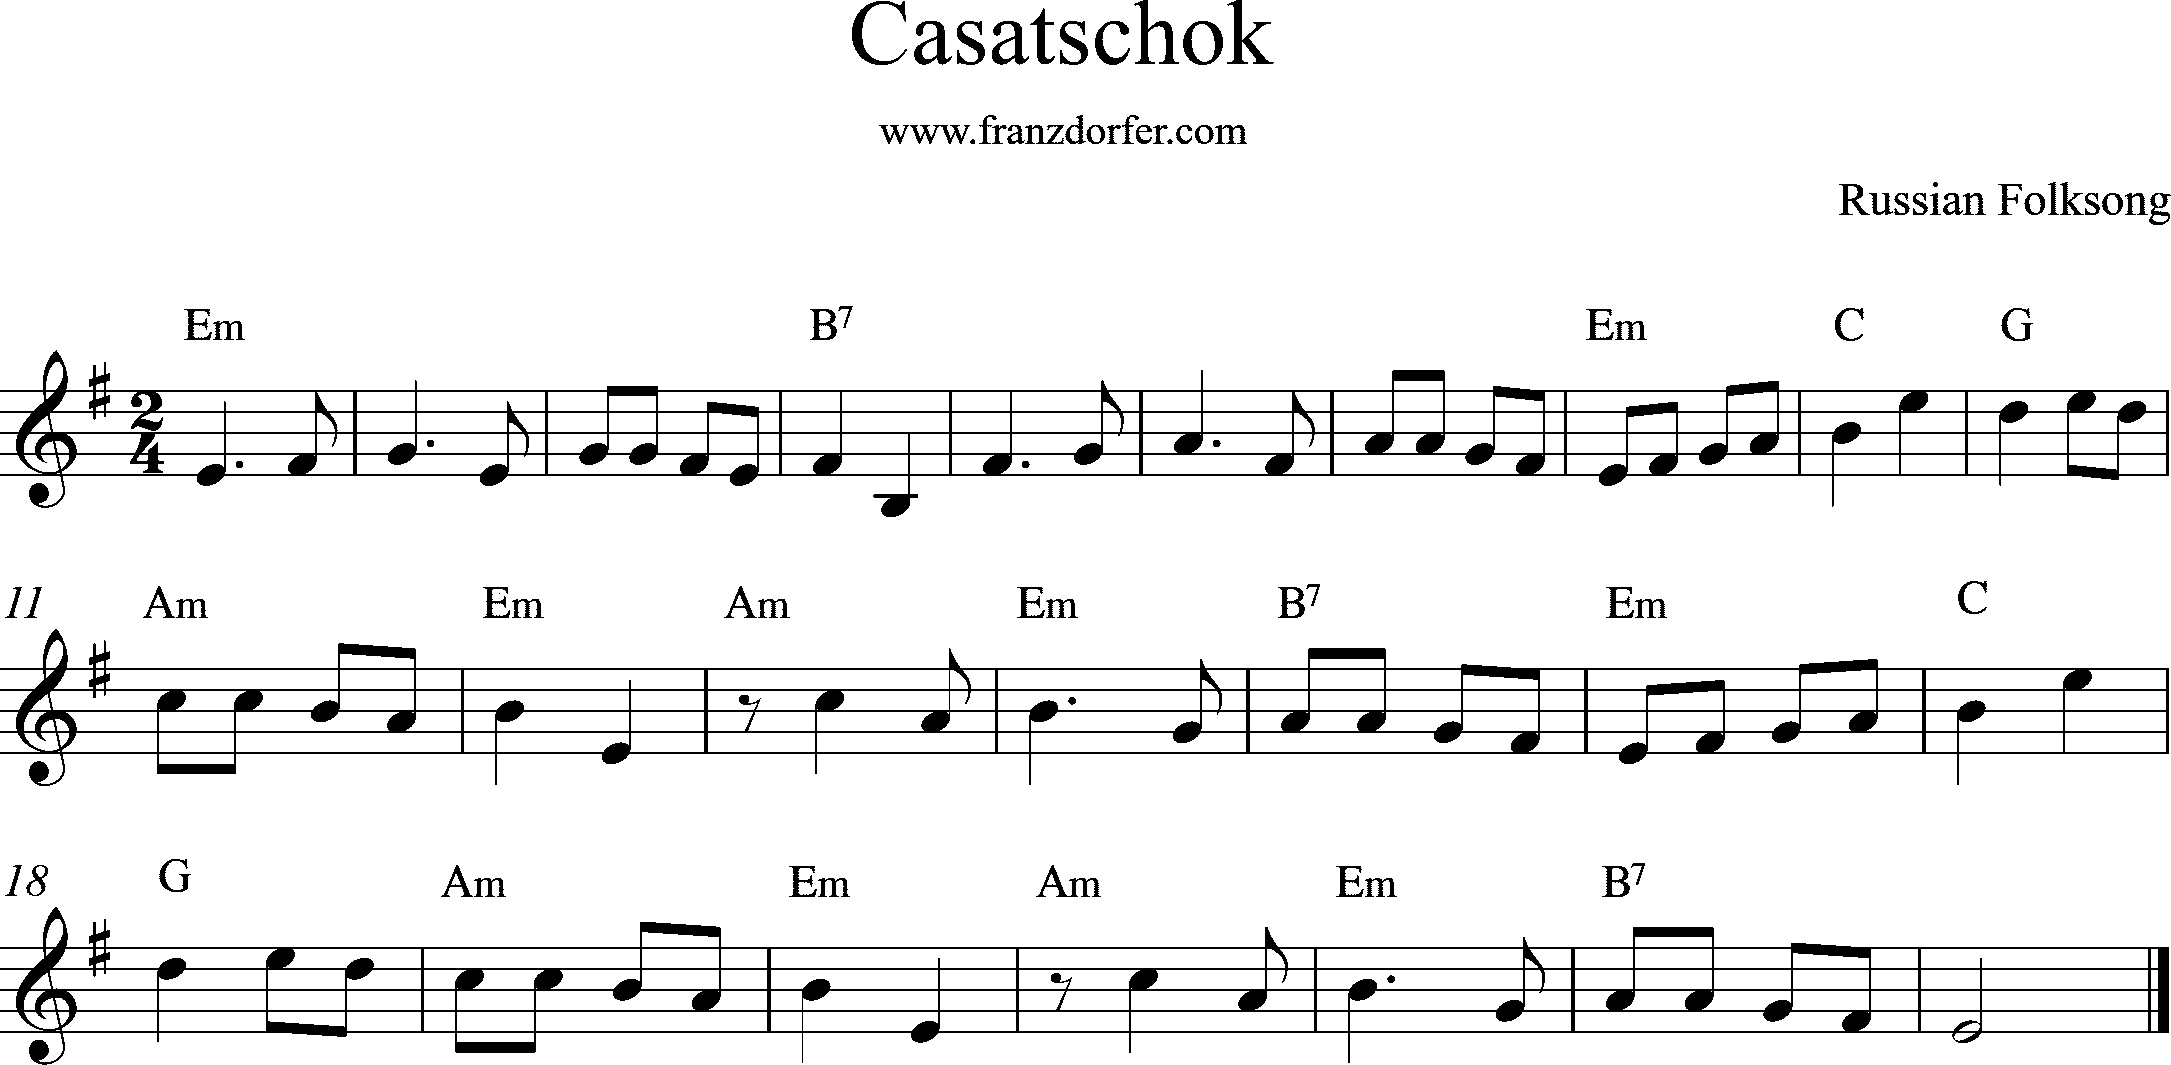 clarinet sheetmusic, Casatschok